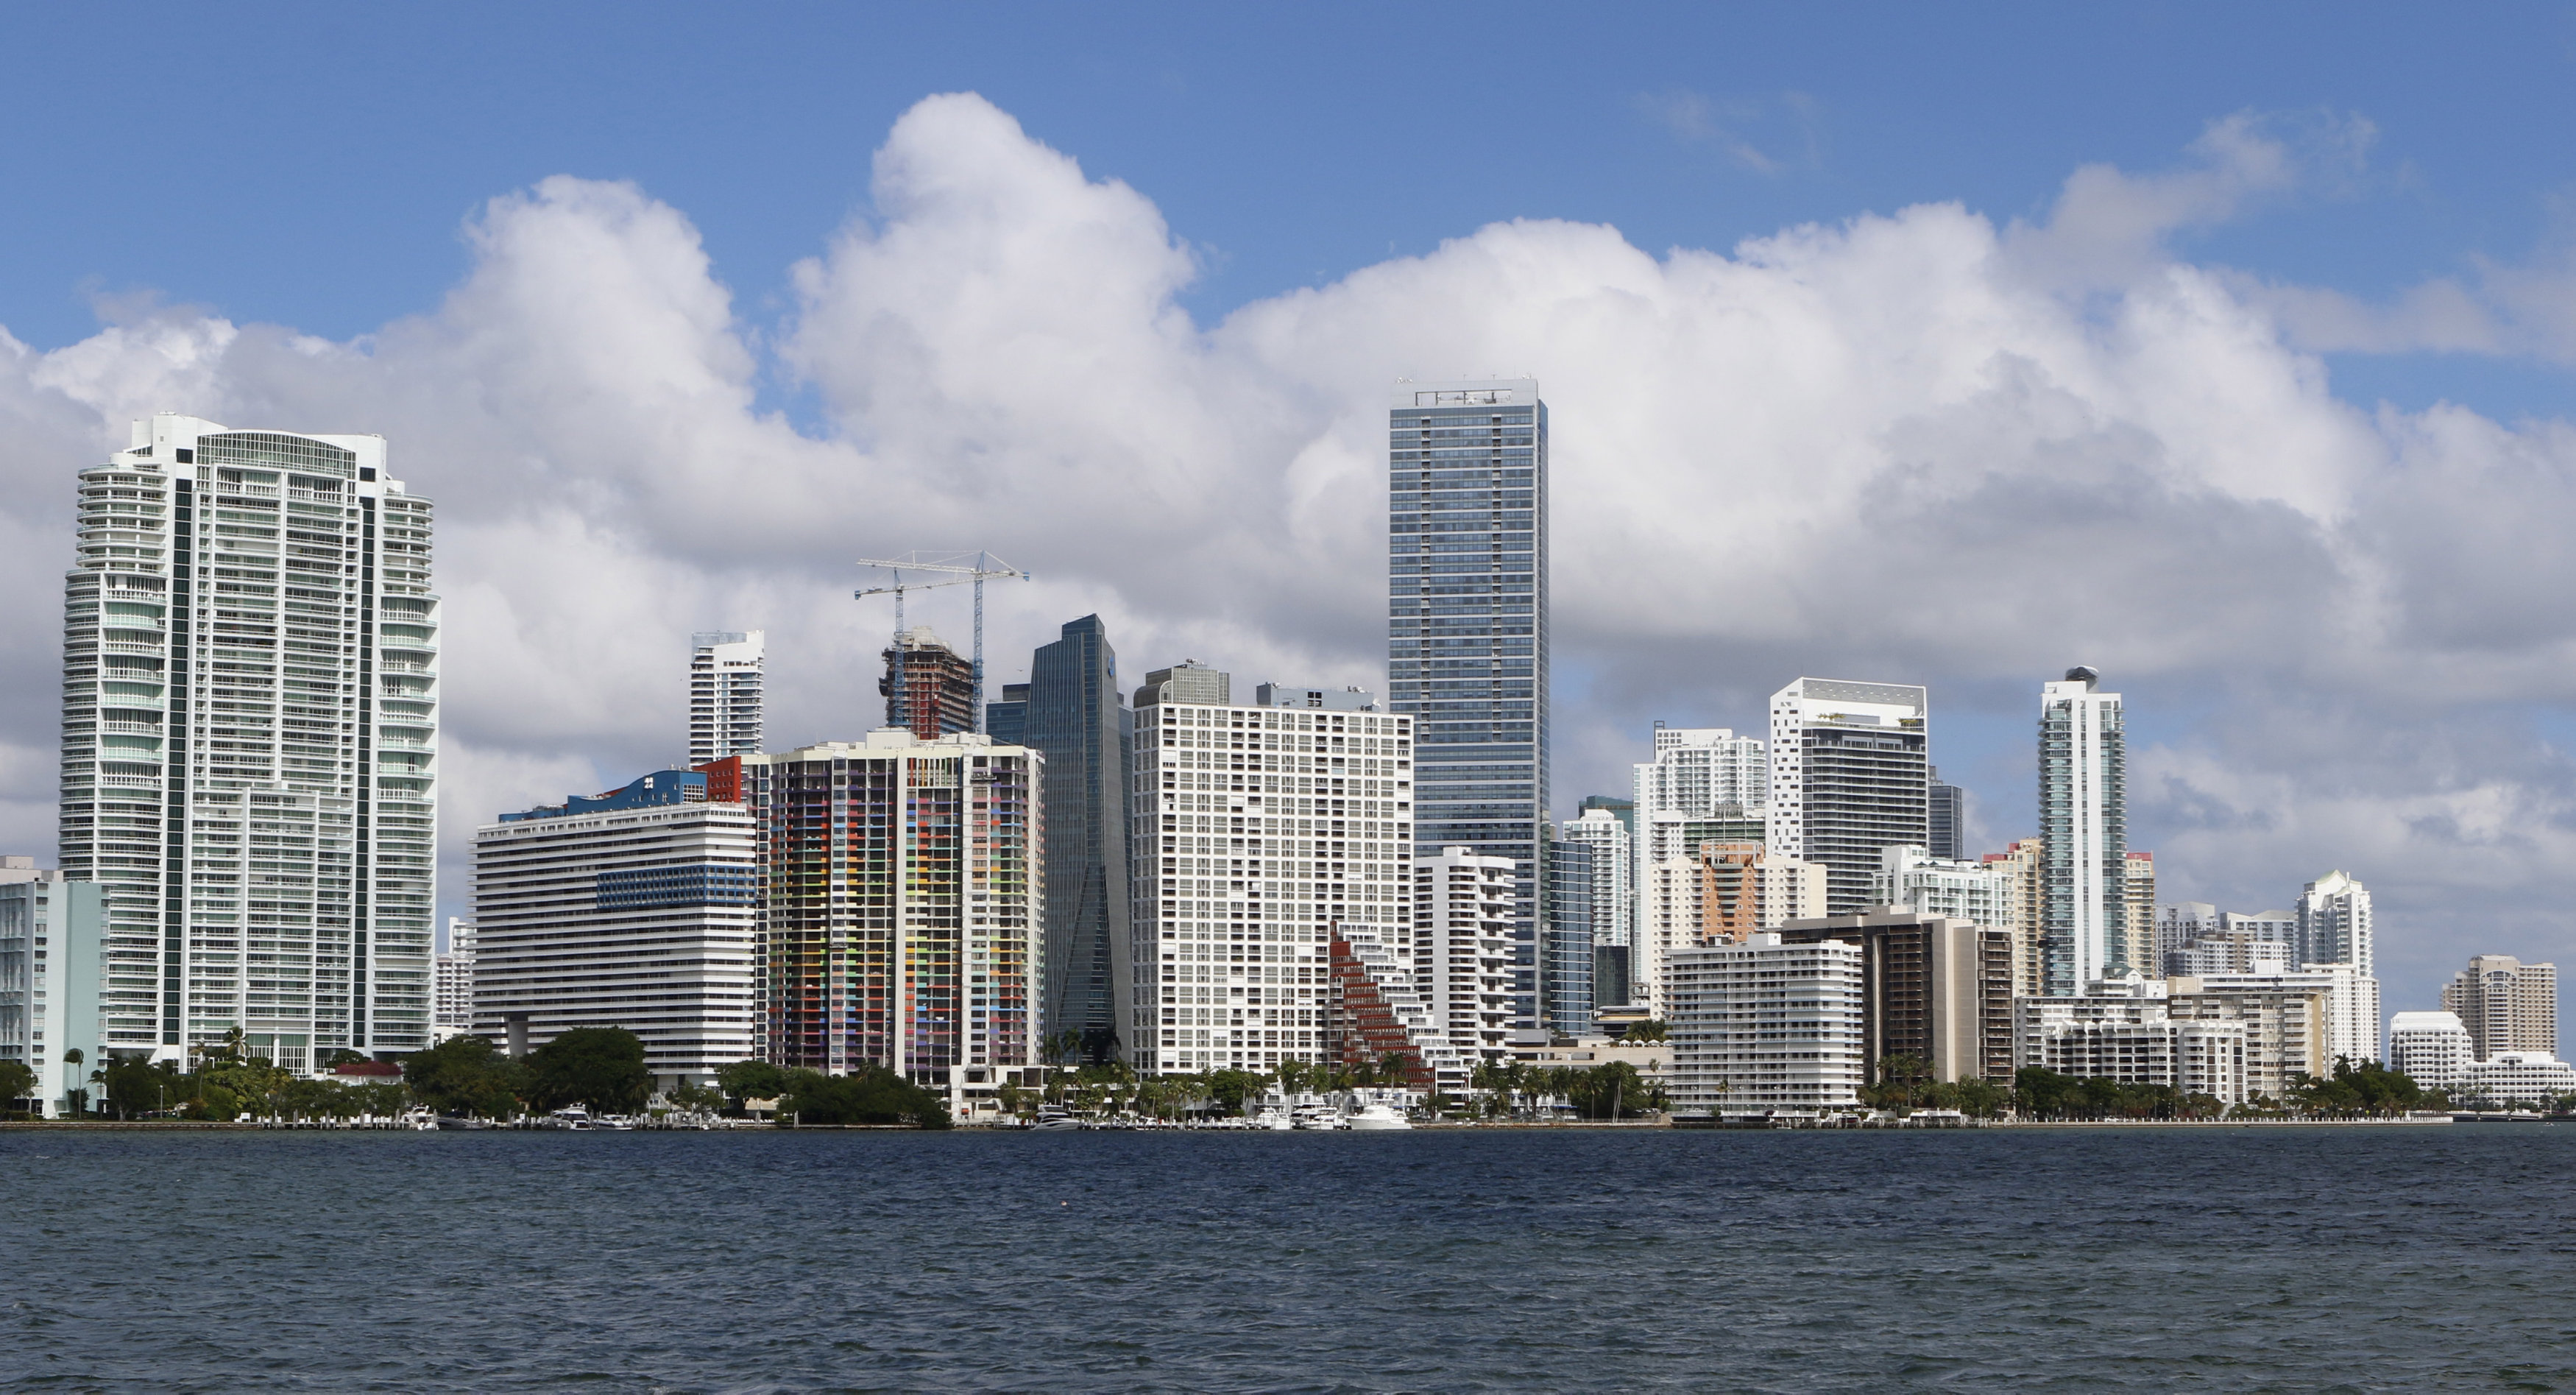 FILE PHOTO: The downtown skyline of Miami, Florida is seen on Nov 5, 2015. REUTERS/Joe Skipper/File Photo